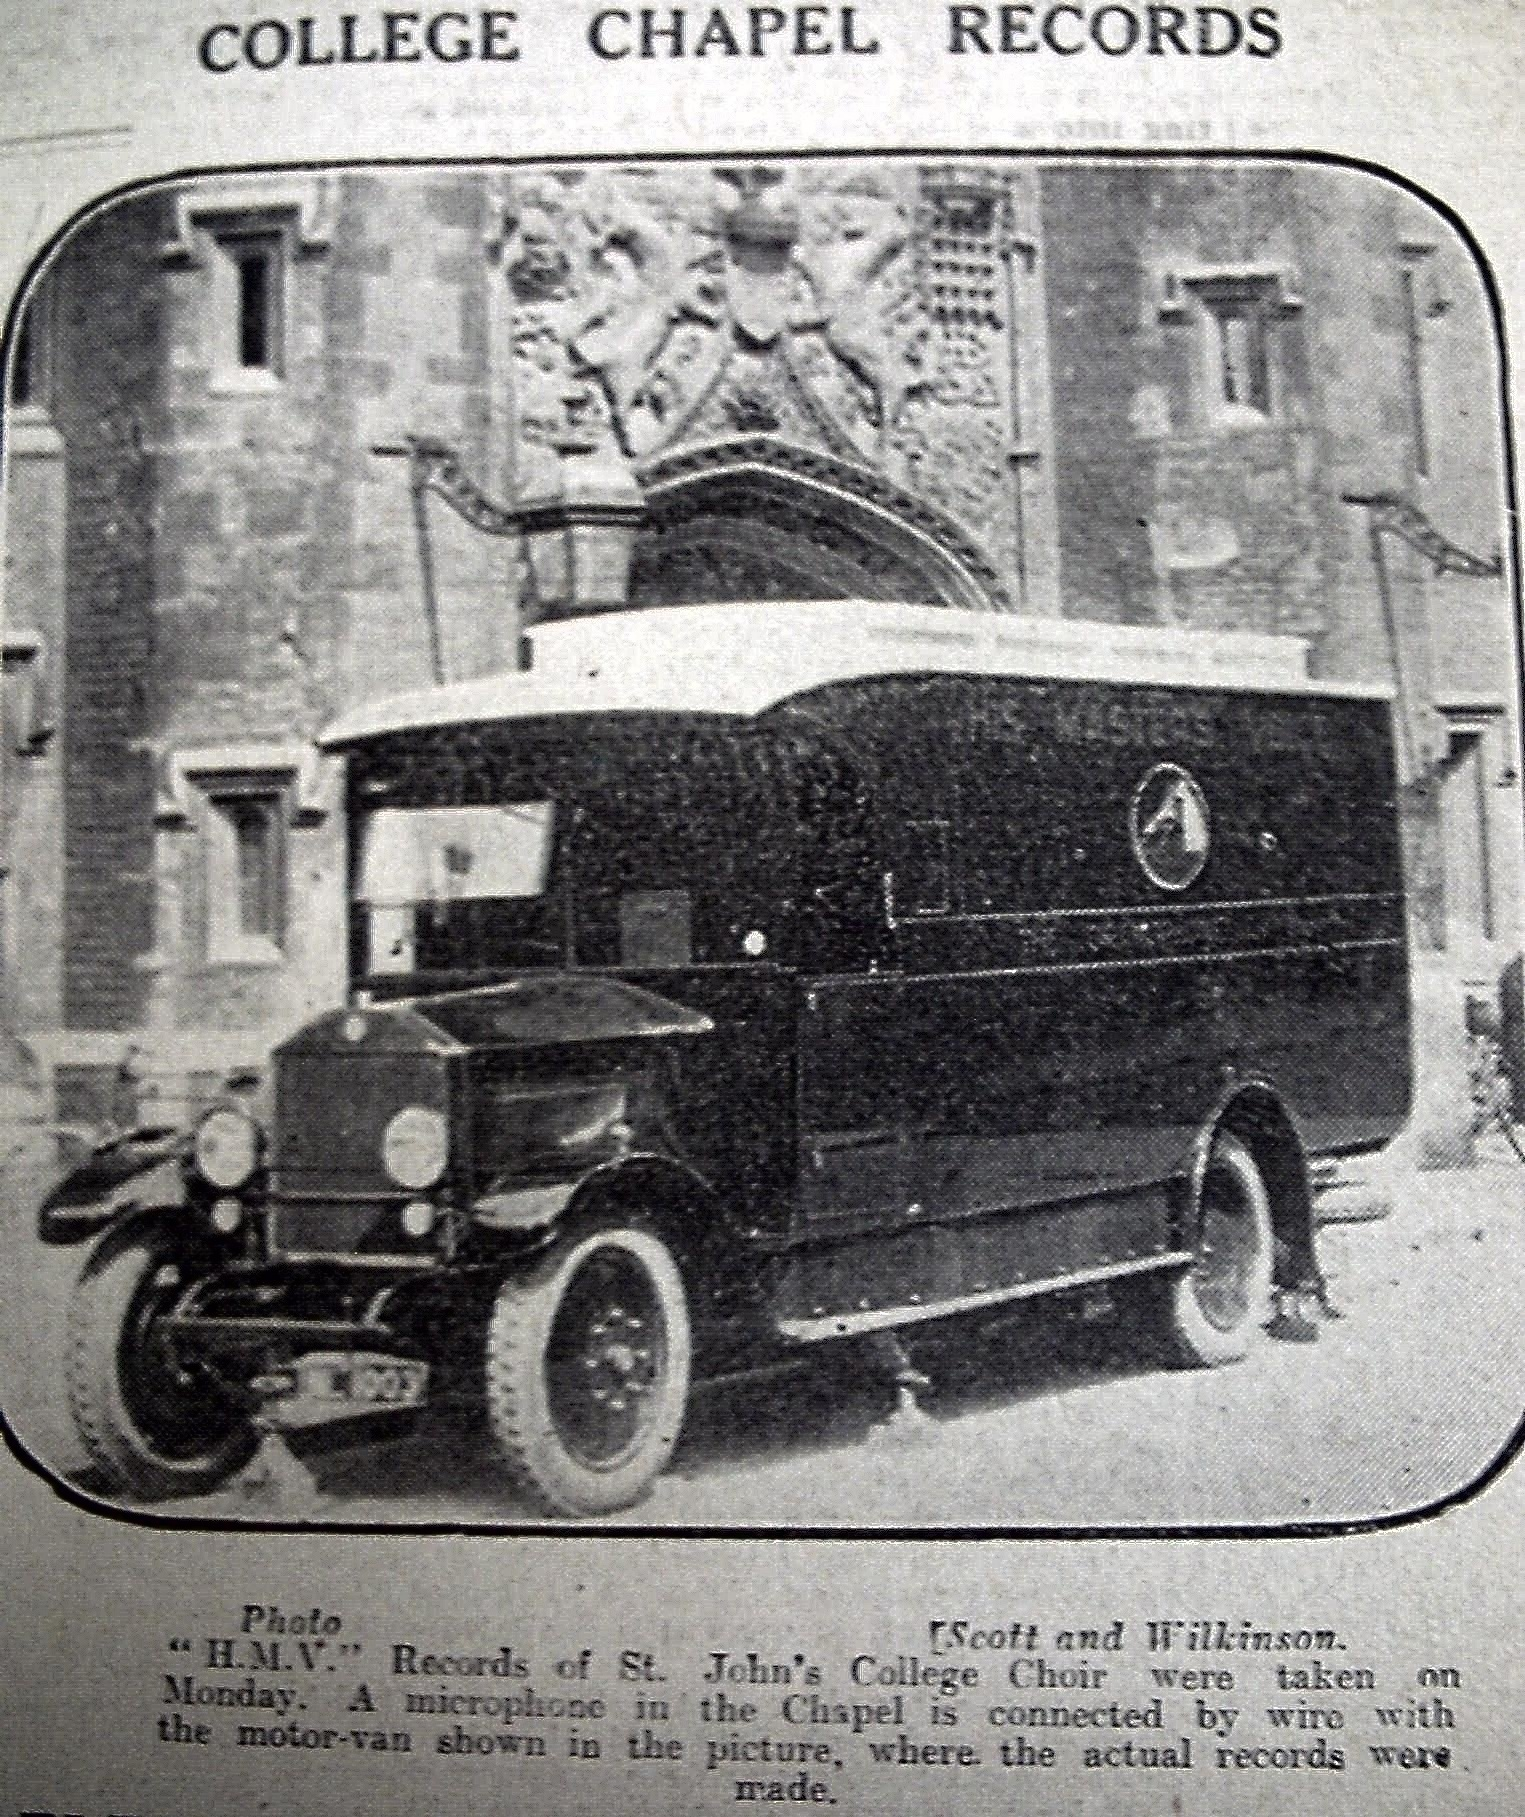 HMV recording van outside the chapel on the day of the recording